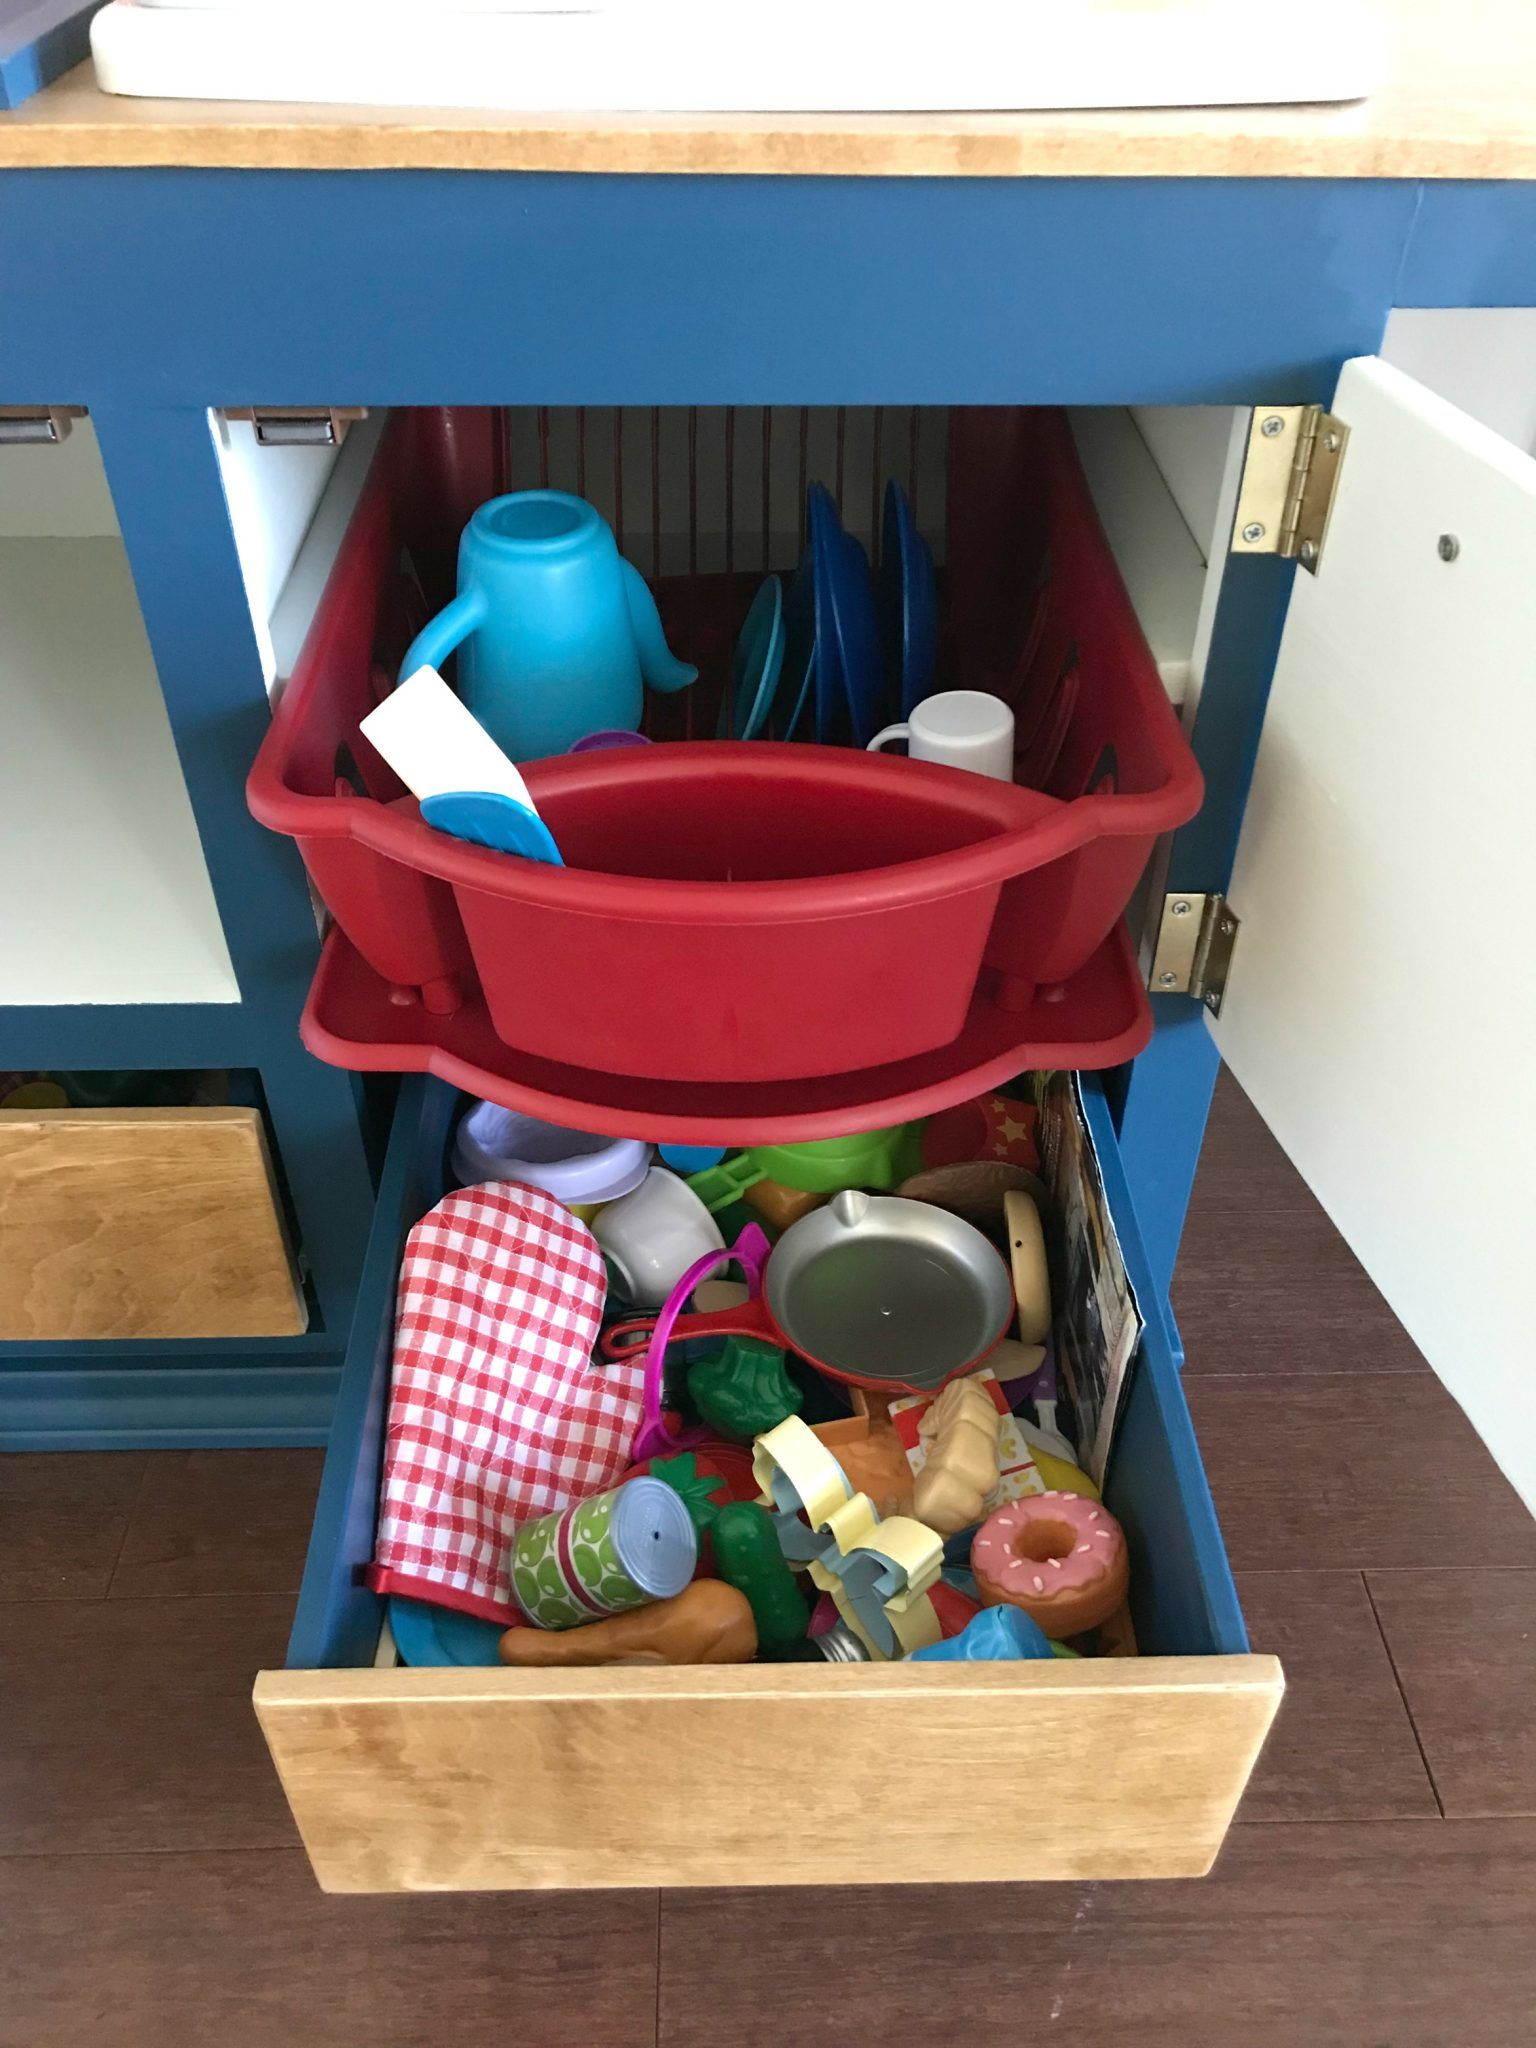 Yay! This Kids Play Kitchen DIY Woodworking Plan is an easy woodworking build with lots of fun additions that little kids will love! I have the tutorial, printable plans, and a video to help you get this built. #AbbottsAtHome #KidsKitchen #PlayKitchen #KidsKitchen #KidsFurniture #woodworking